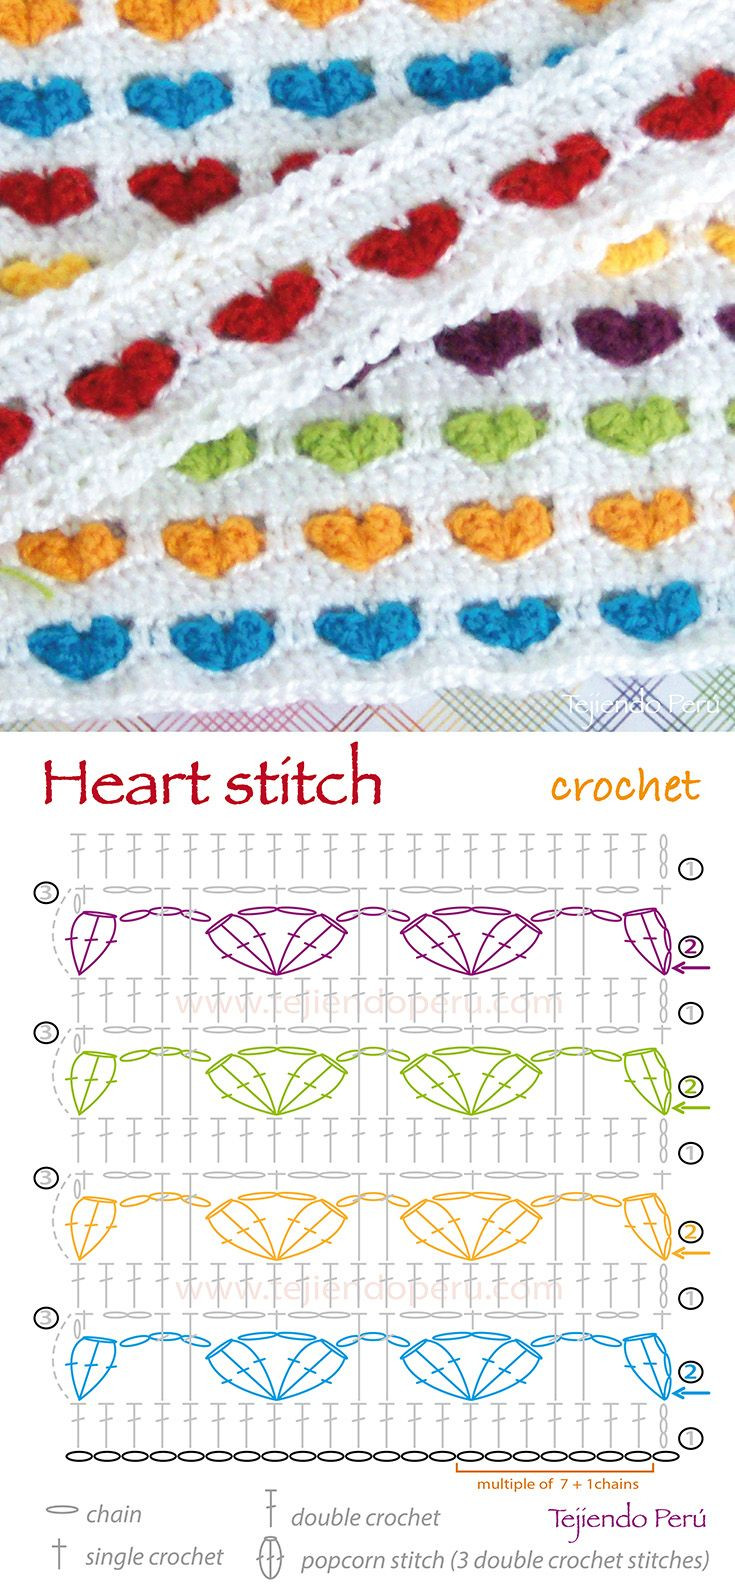 Best Of Ergahandmade Crochet Stitches Diagrams Crochet Stitches Diagram Of Amazing 47 Ideas Crochet Stitches Diagram